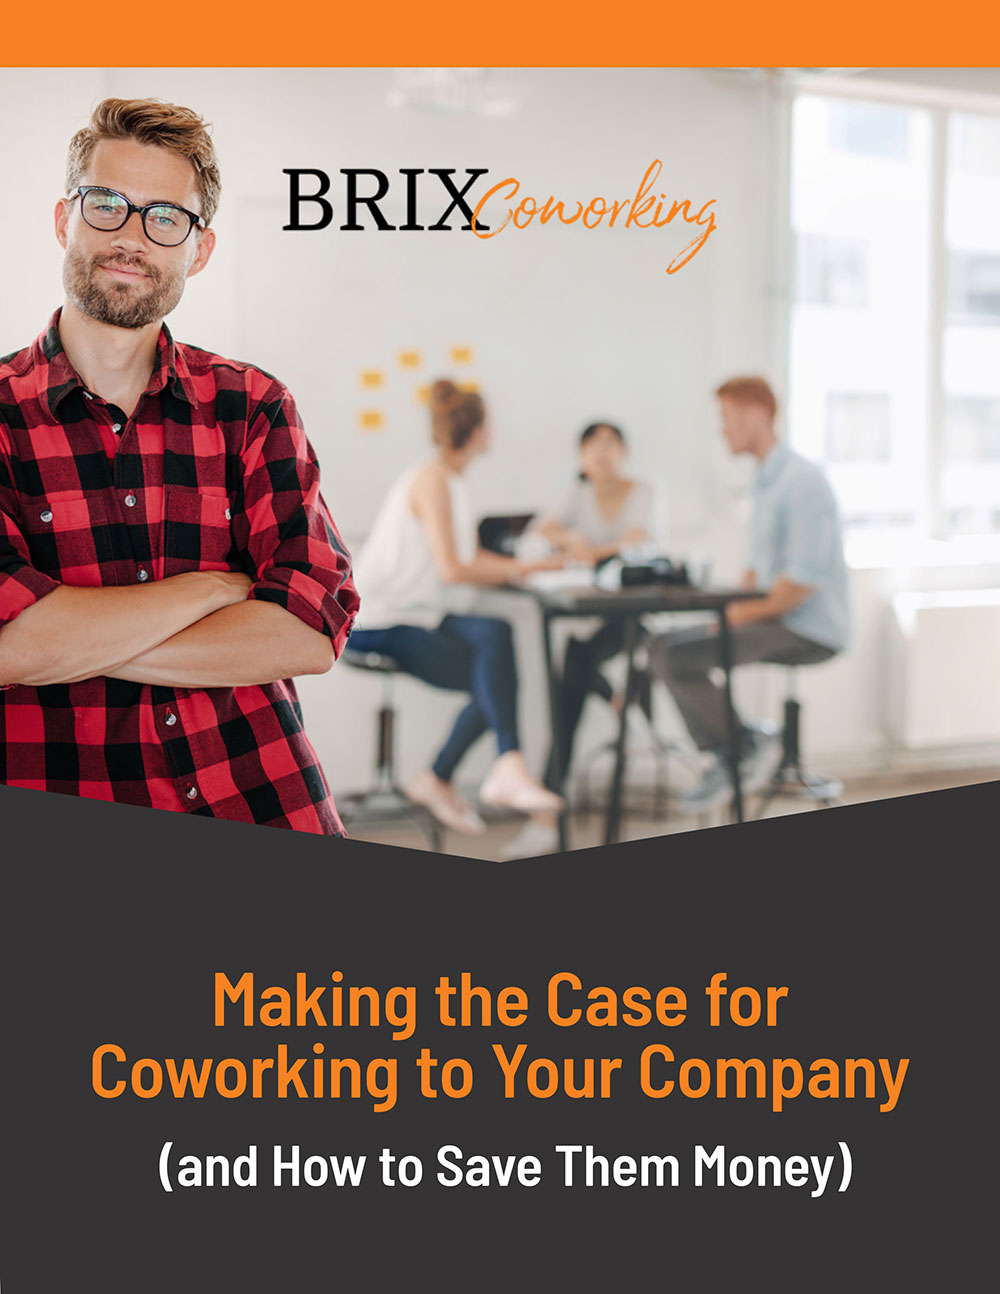 Making the Case for Coworking to Your Company eBook